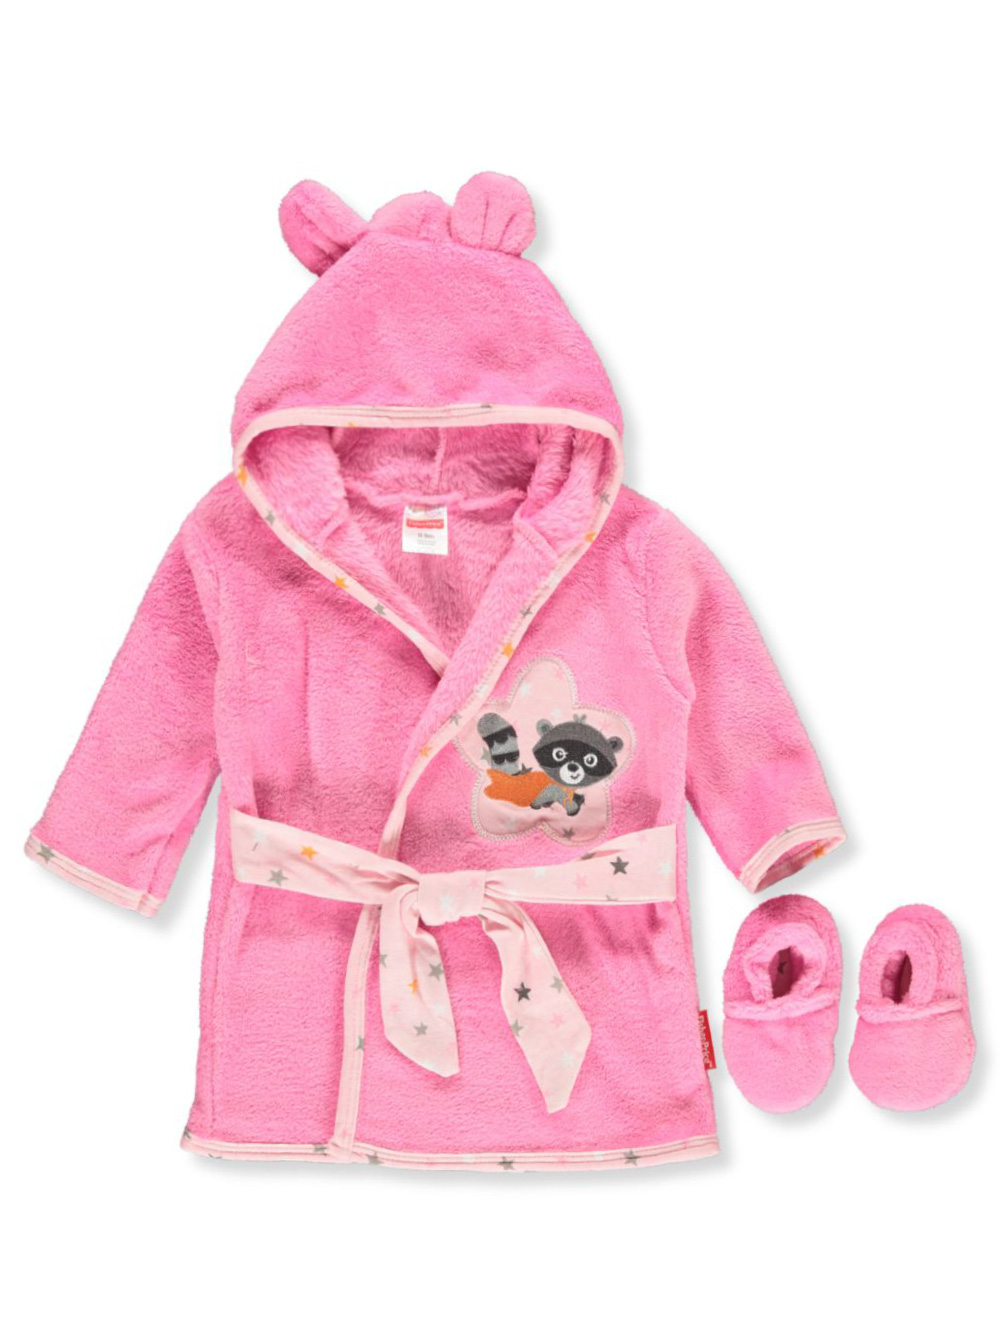 Hooded Robe and Slippers Set